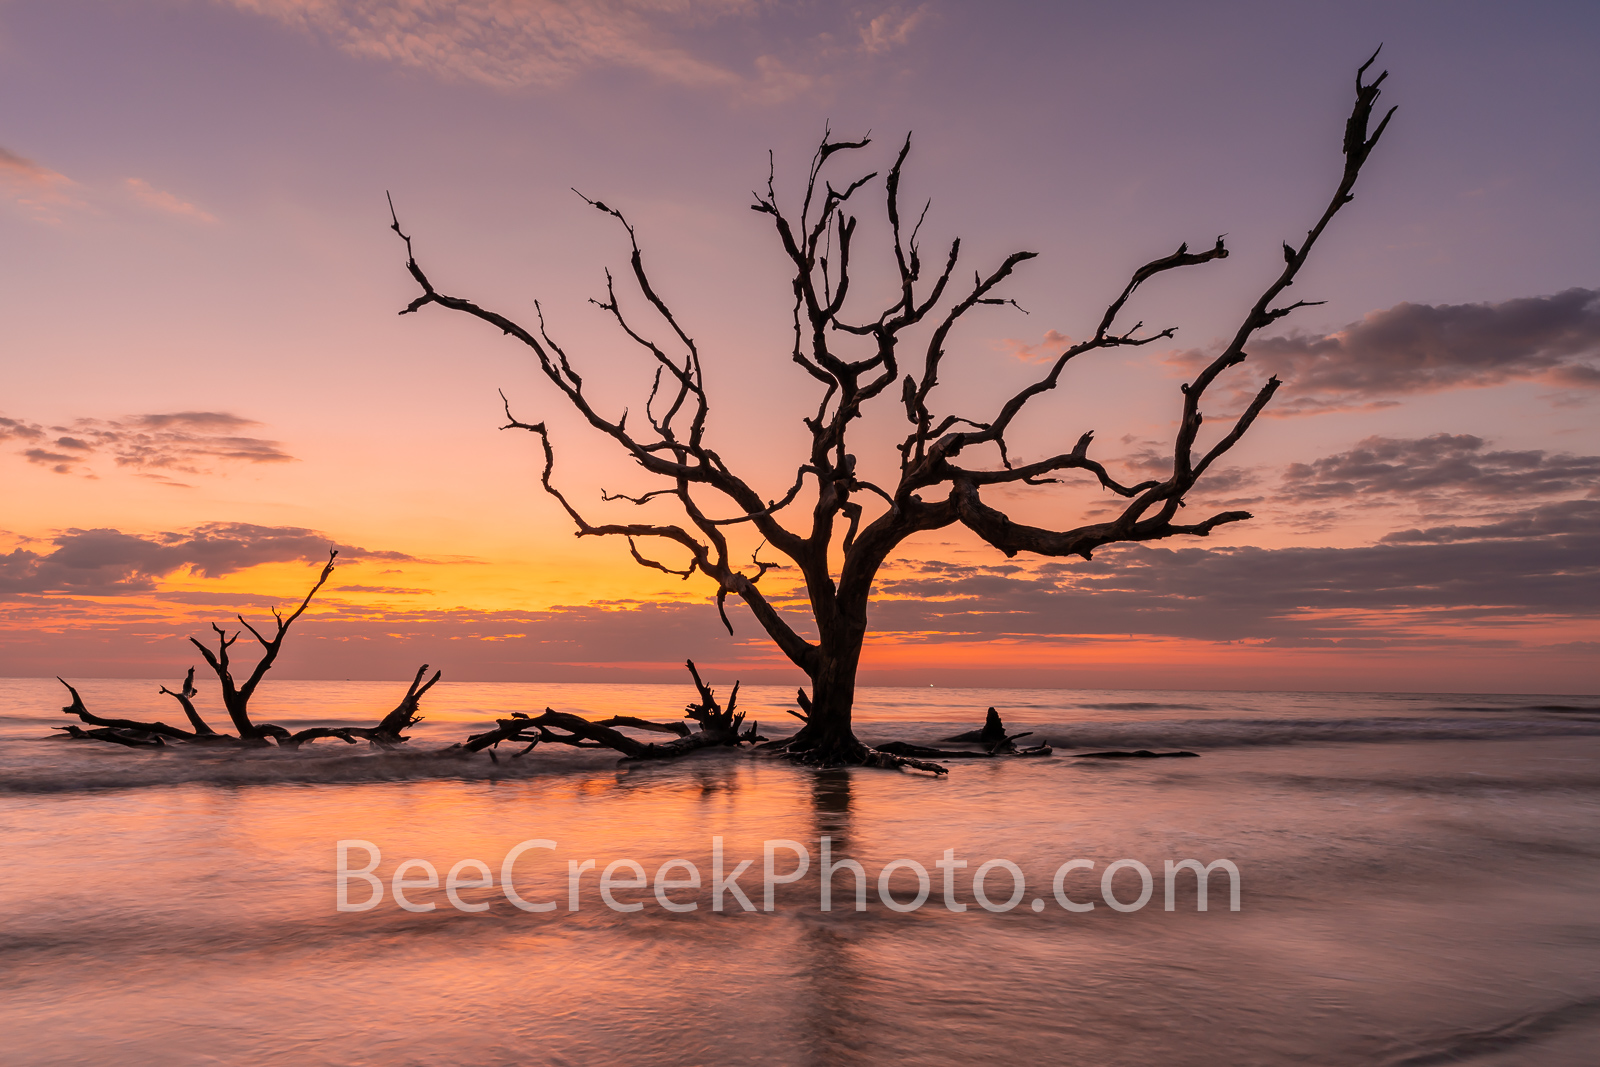 Driftwood beach, driftwood, jekyll island, beach, fiery, red, orange, pink, dawn, sunrise, silouette, deadwood, tree, tide, surf, firey, color, tide rolled in, barrier island, alantic coast, georgia, , photo